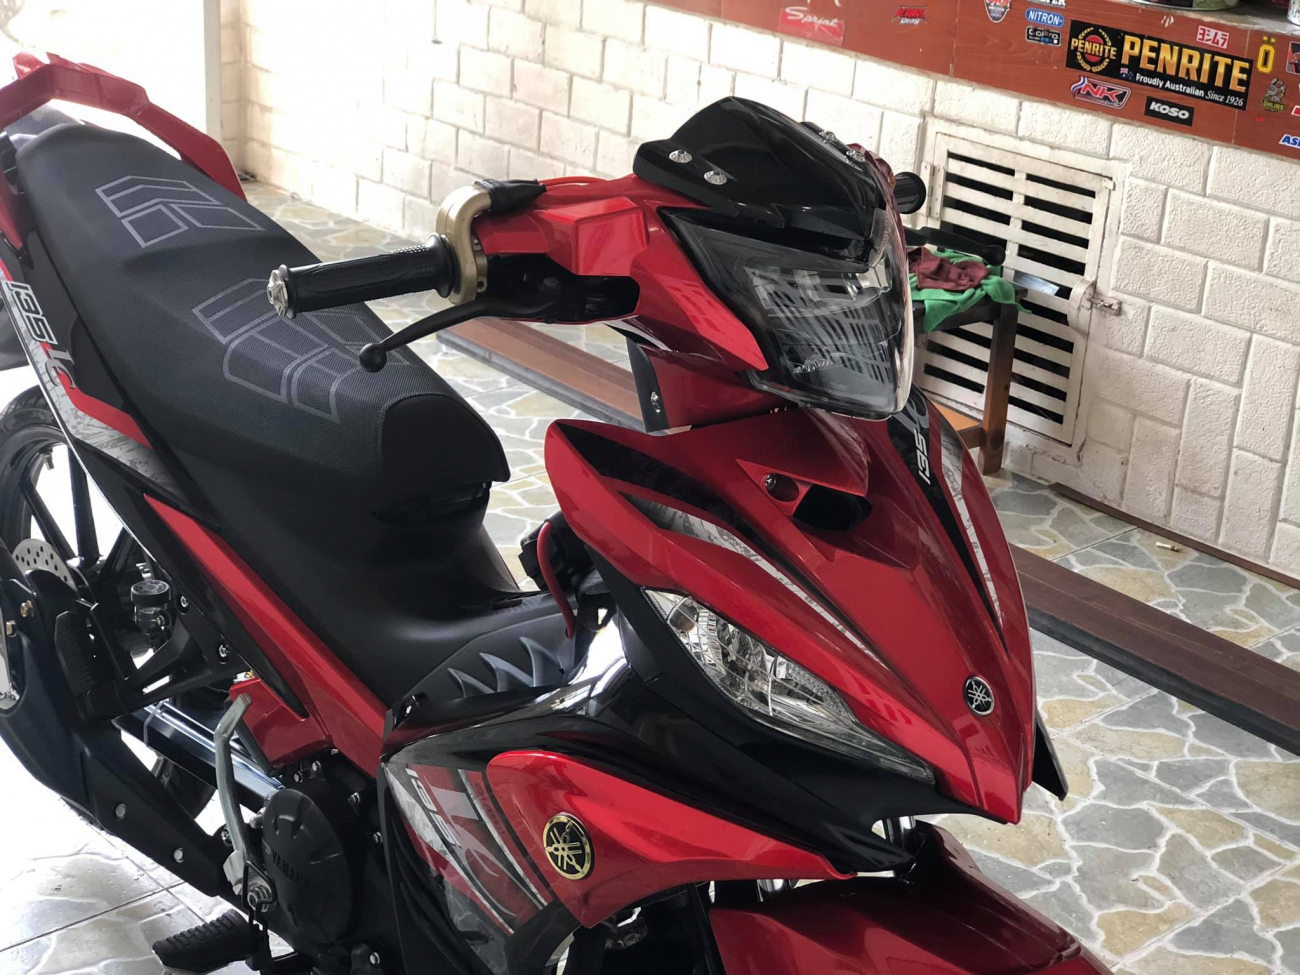 Exciter 135 cai trang thanh LC 135 voi dan chan chat luong - 3